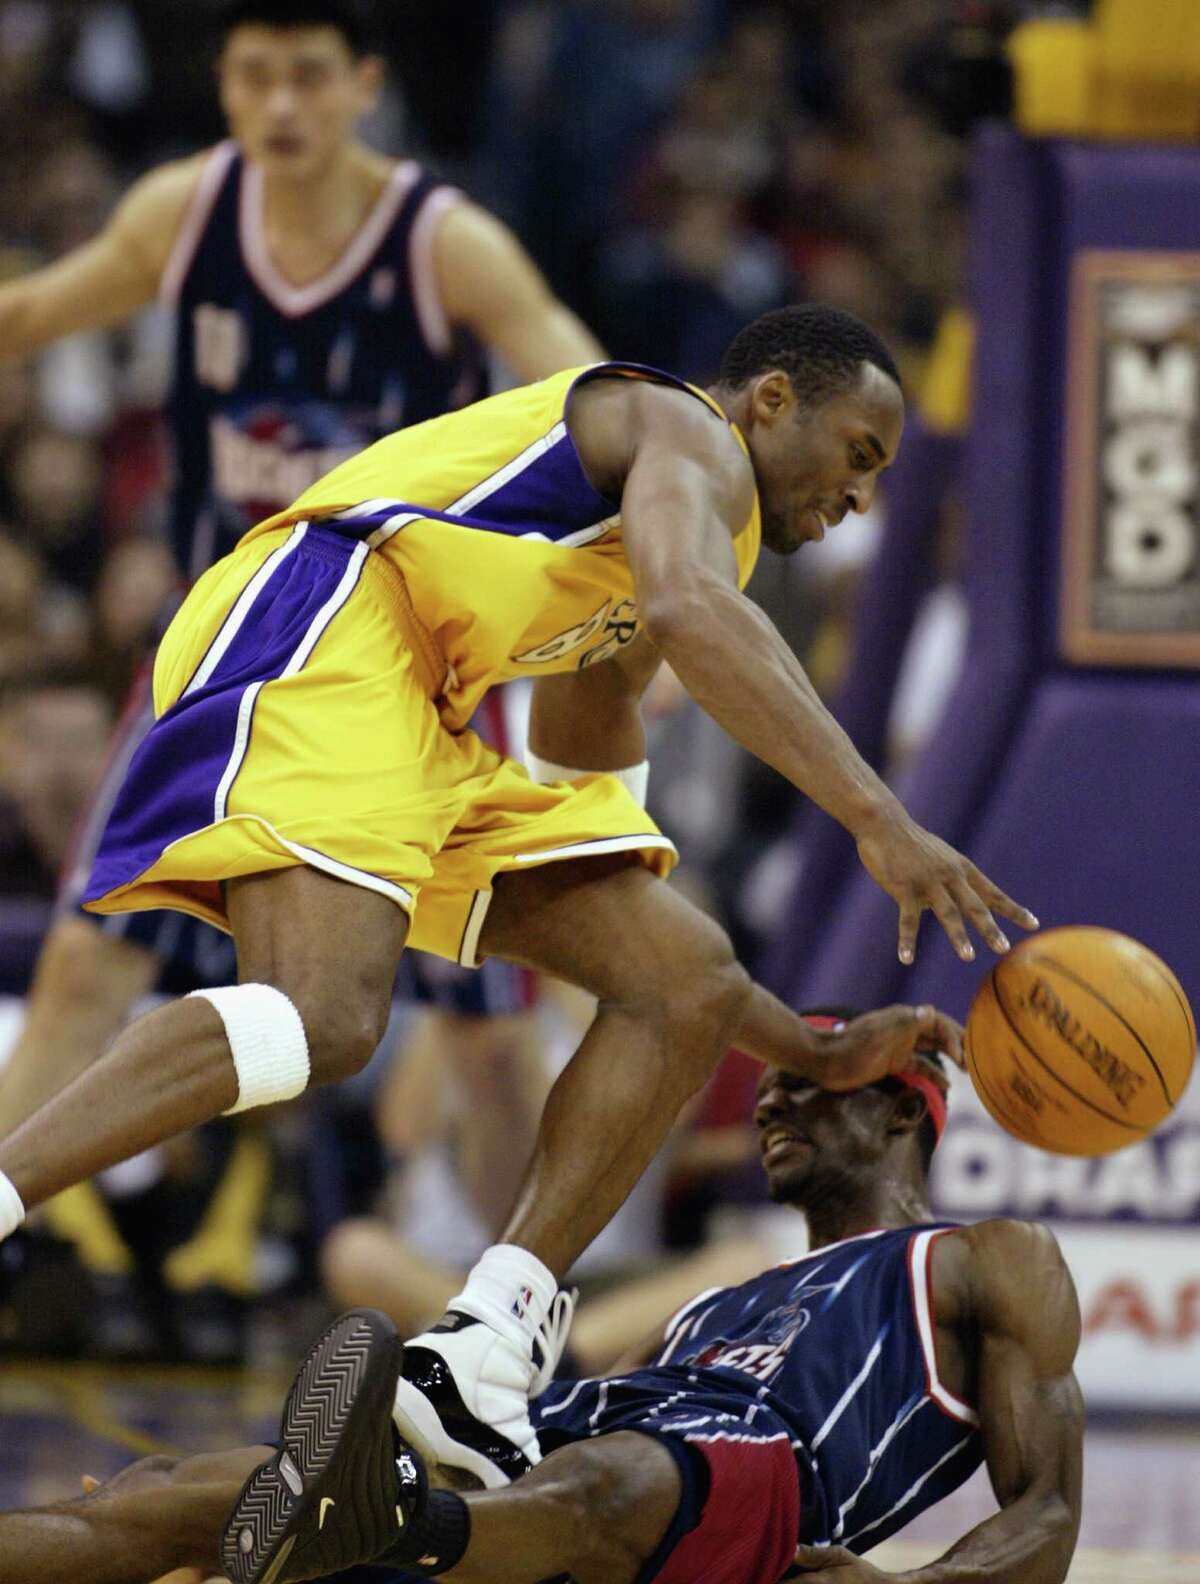 Nov. 17, 2002: Rockets 93, Lakers 89 With Shaquille O'Neal gone, Bryant had to try to do it all, and he nearly did in this losing effort. The Rockets got 27 points and nine rebounds from Steve Francis, but Bryant countered with 46 points, six rebounds and four assists.